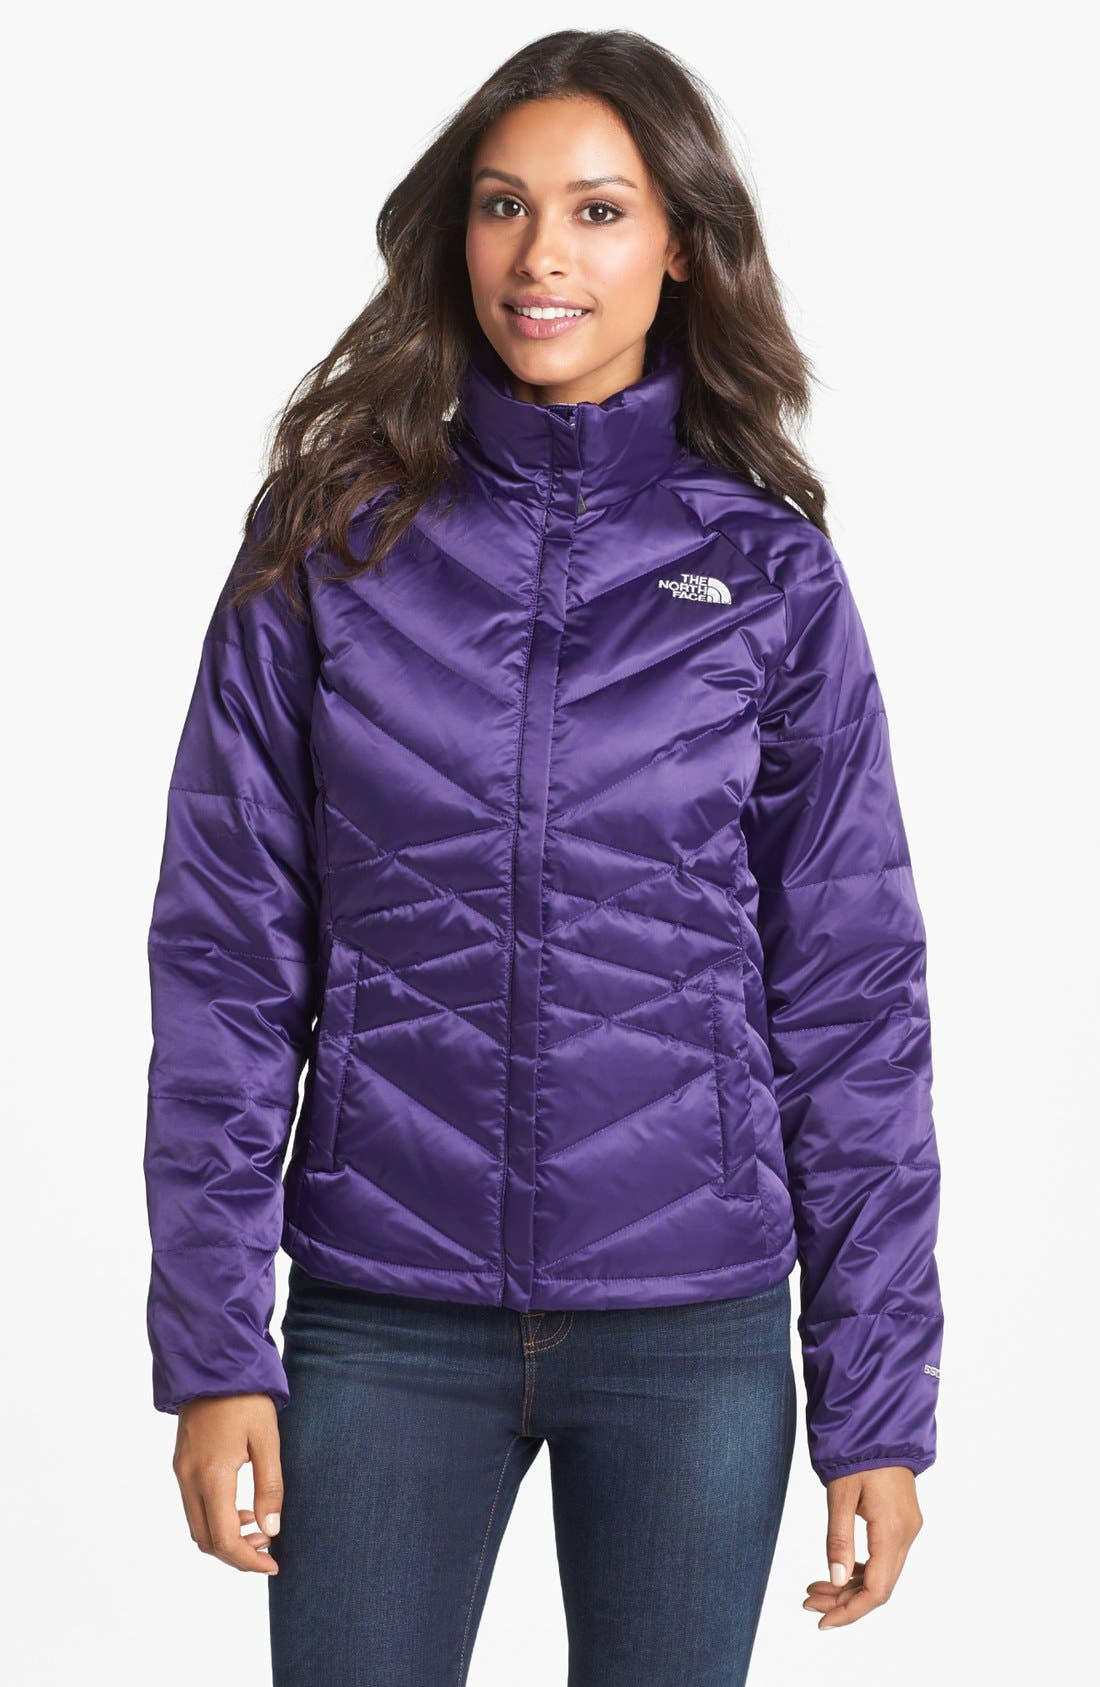 Alternate Image 1 Selected - The North Face 'Aconcagua' Down Jacket